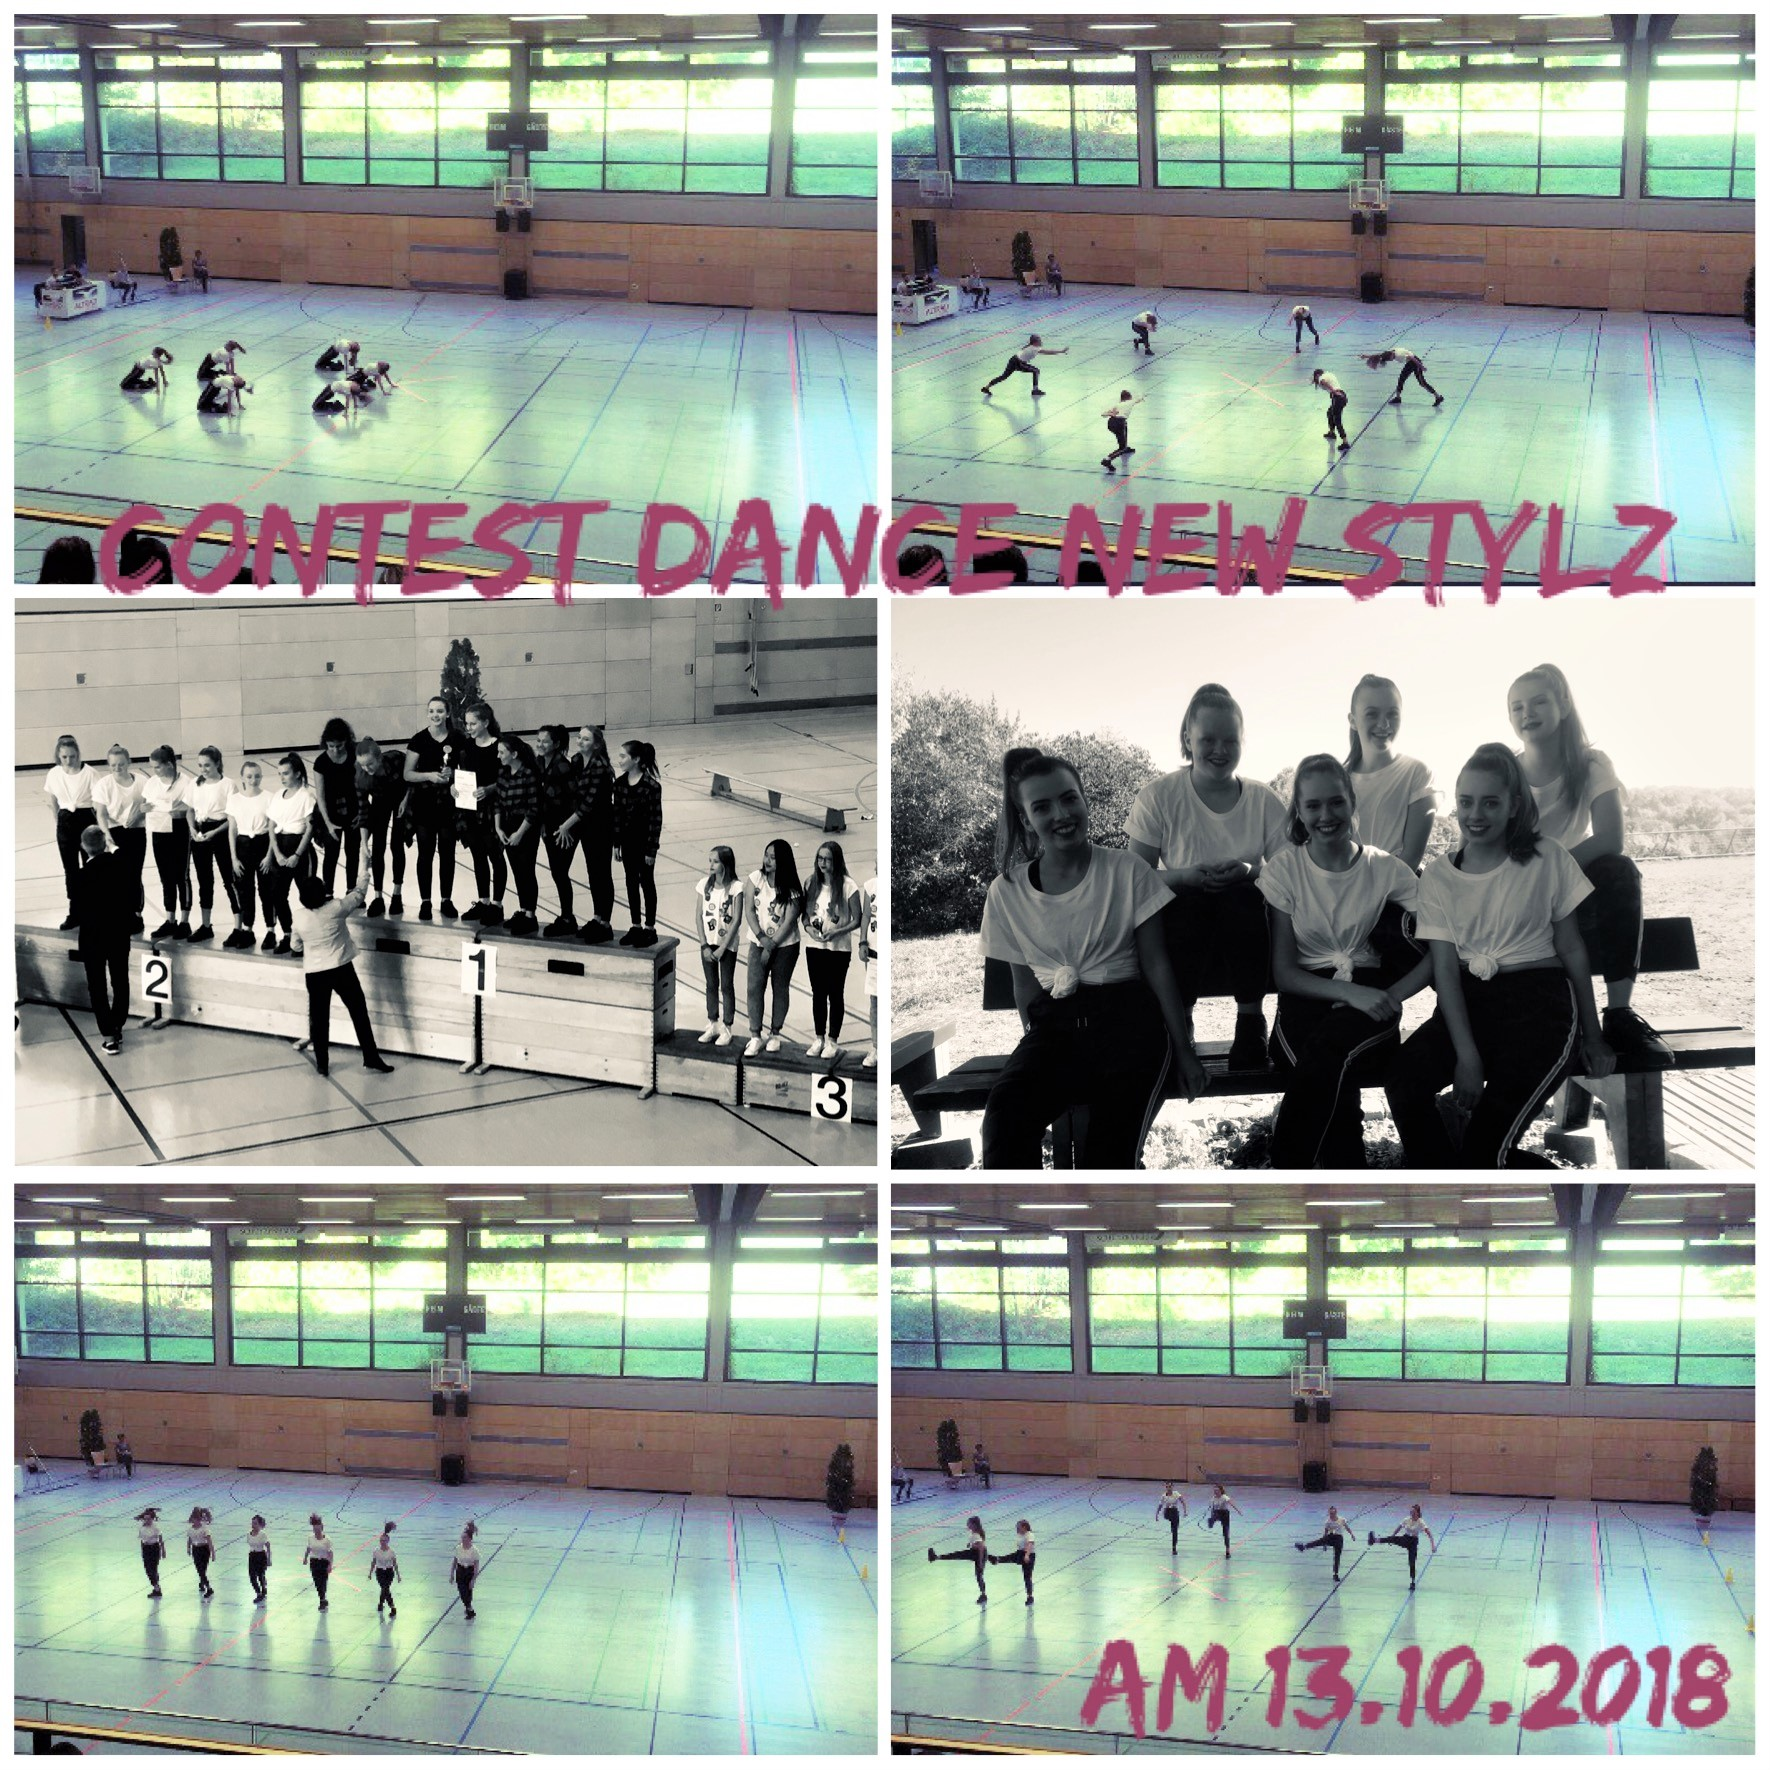 contest dance new styl